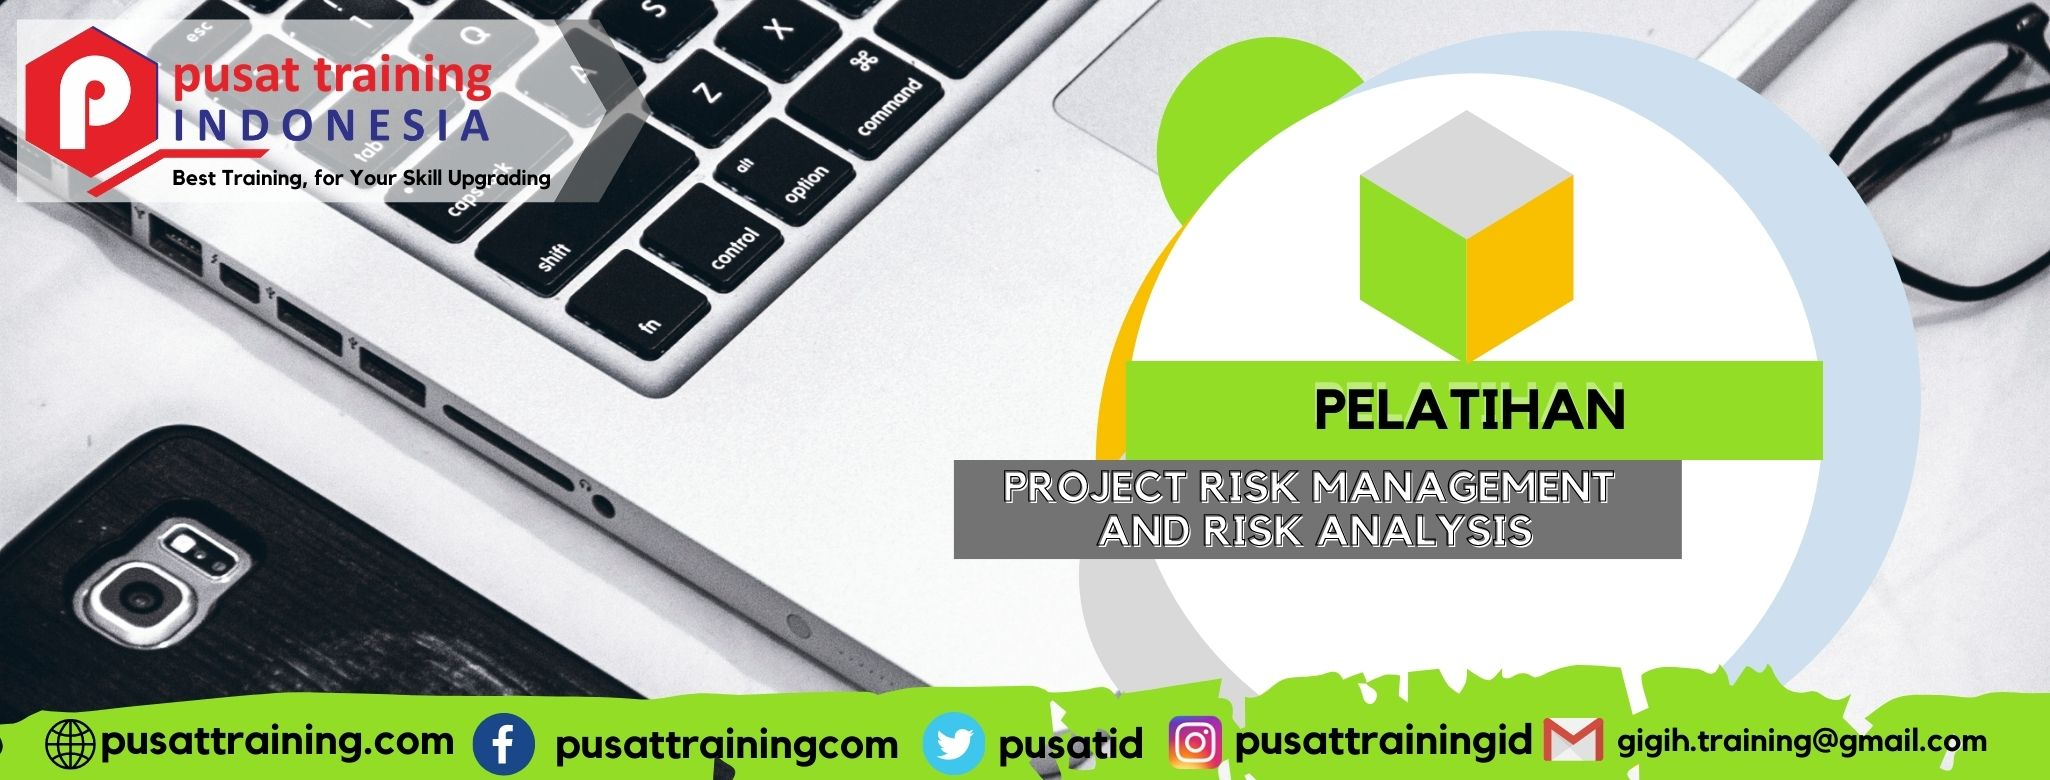 PELATIHAN PROJECT RISK MANAGEMENT AND RISK ANALYSIS